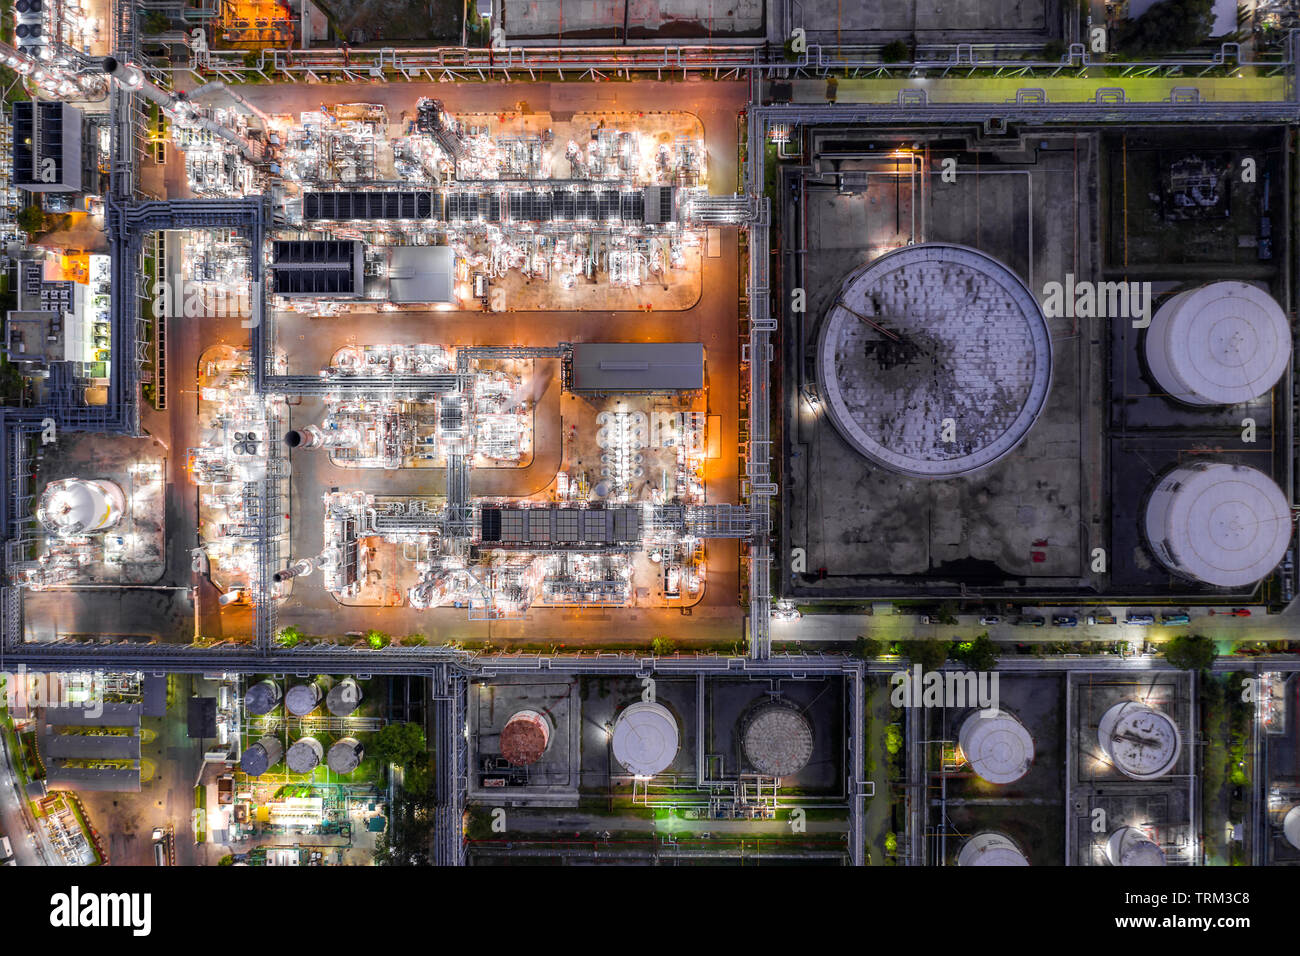 Aerial view oil refinery and gas refinery plant form industry zone at night. Stock Photo